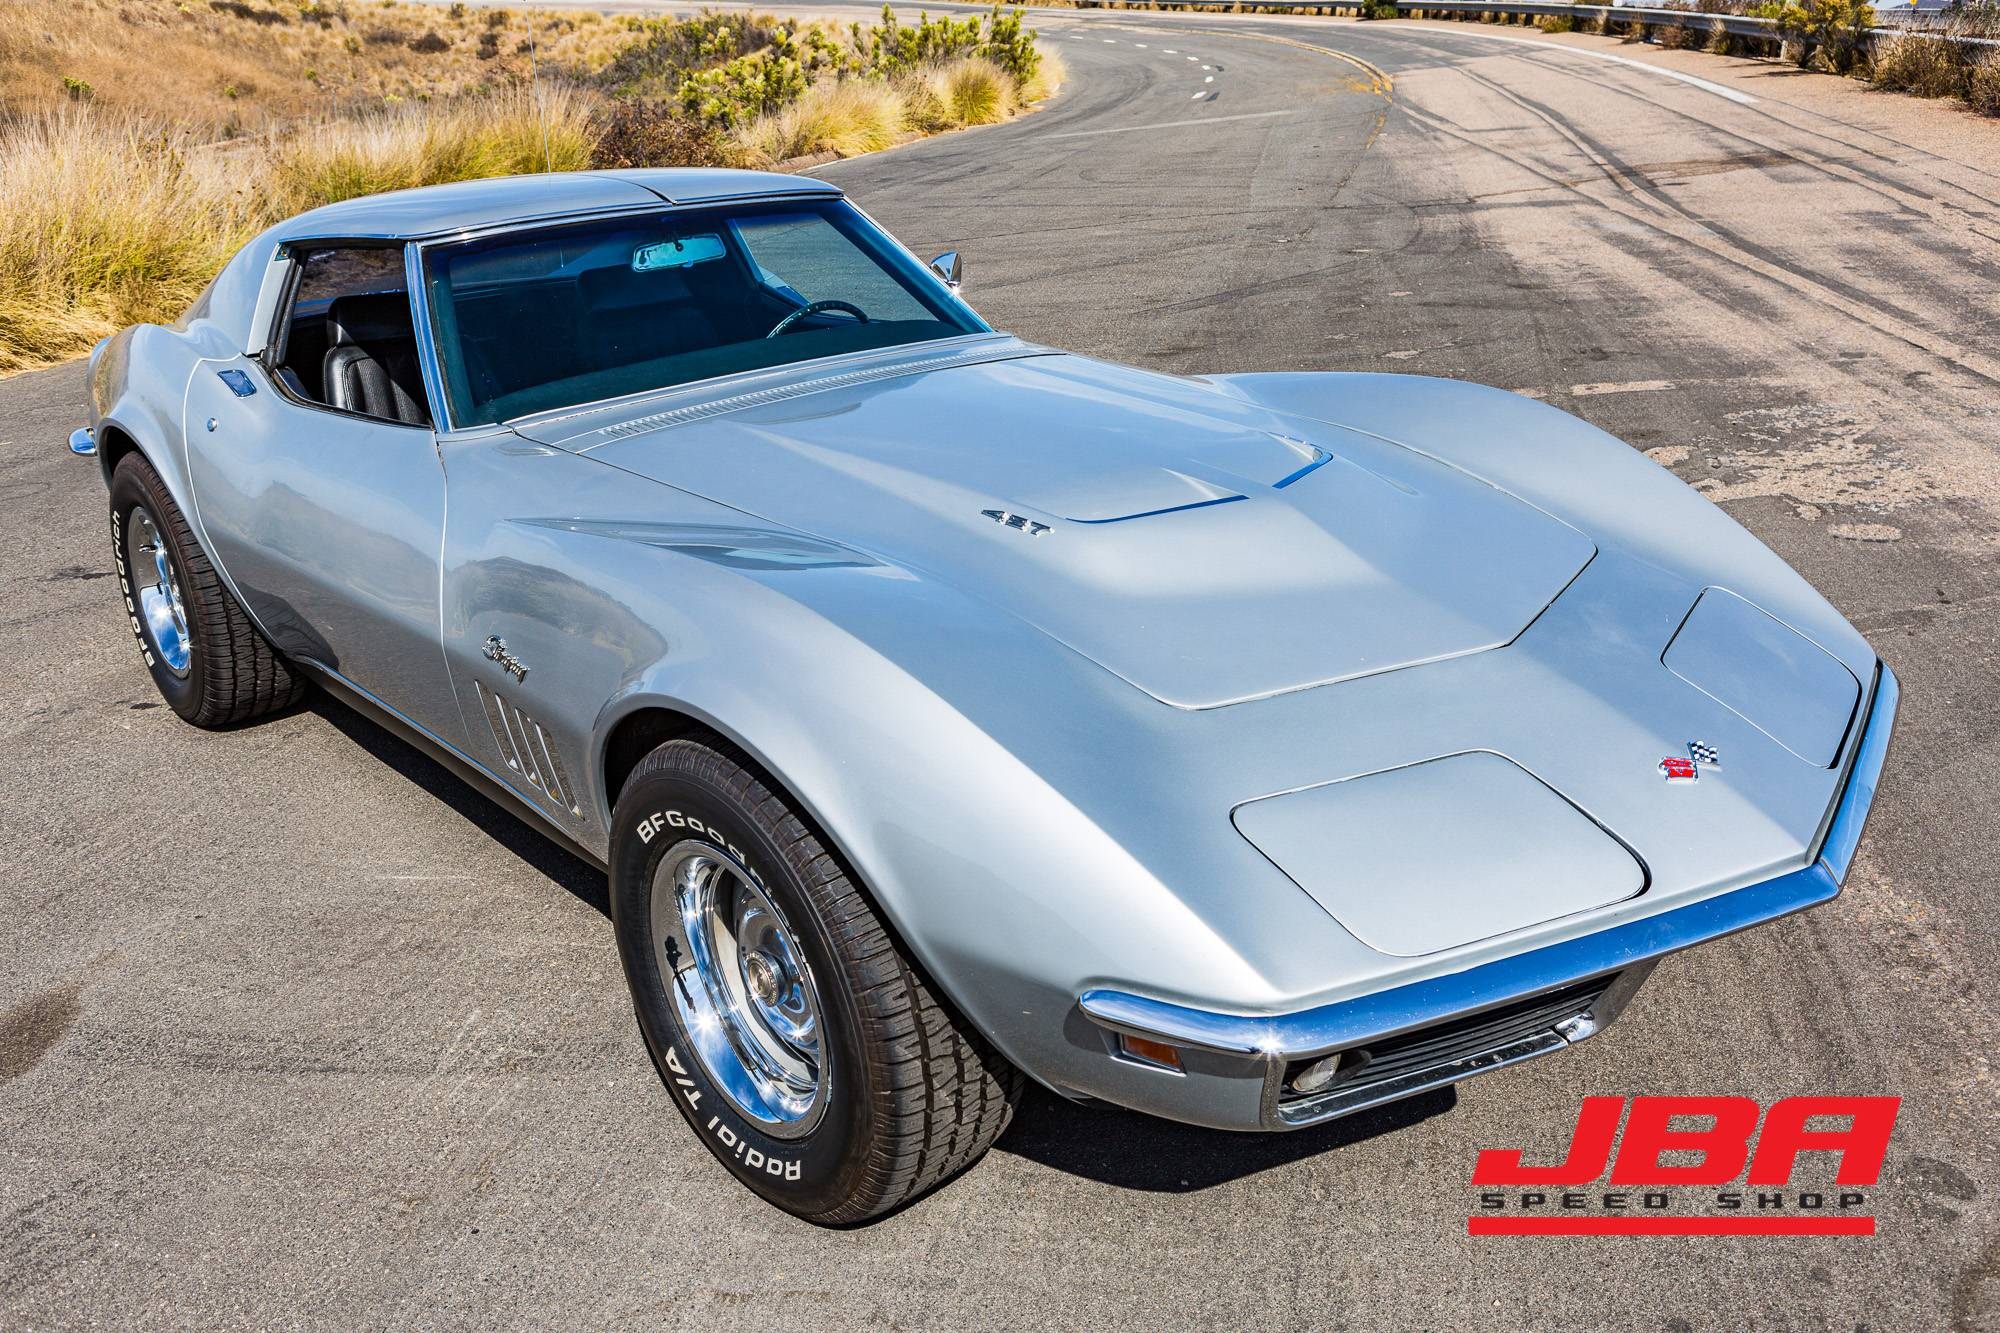 1969 Chevrolet 427 Corvette Stingray